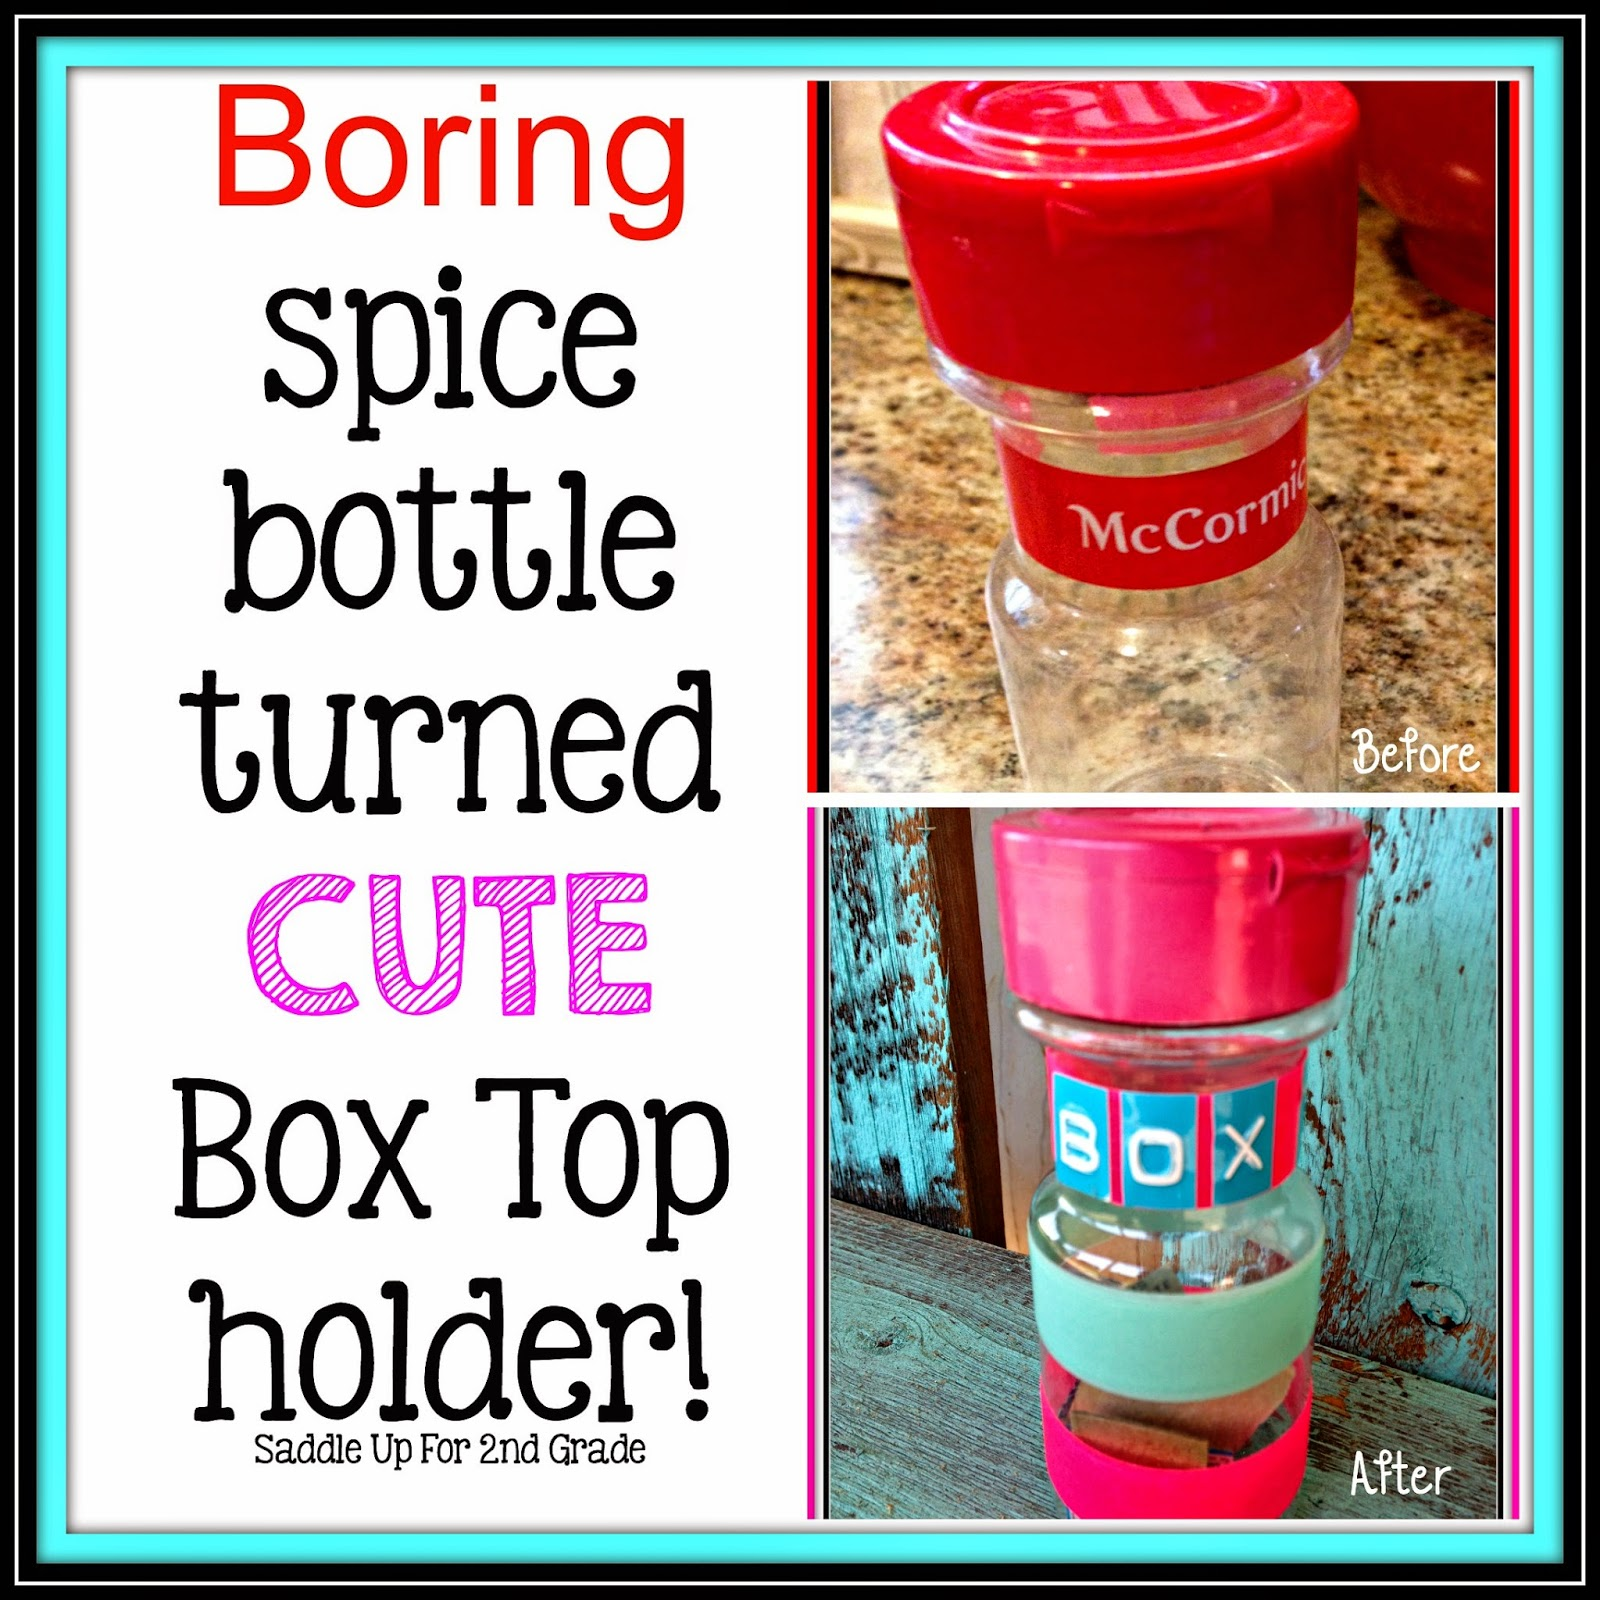 Boring Spice Bottle Turned Cute Box Top Holder by Saddle Up For 2nd Grade